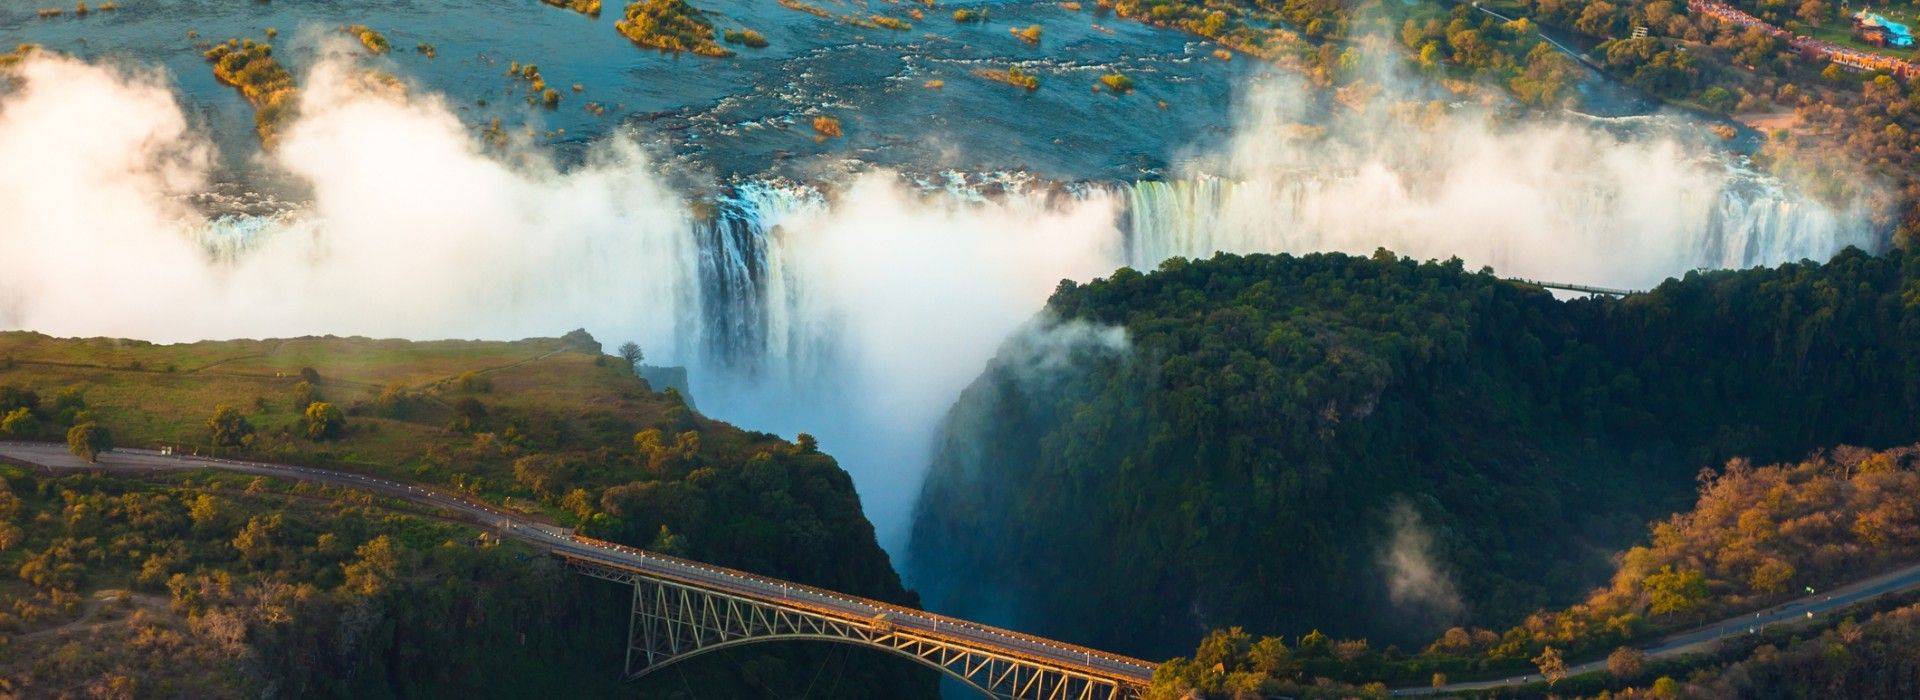 Cultural, religious and historic sites Tours in Zambia